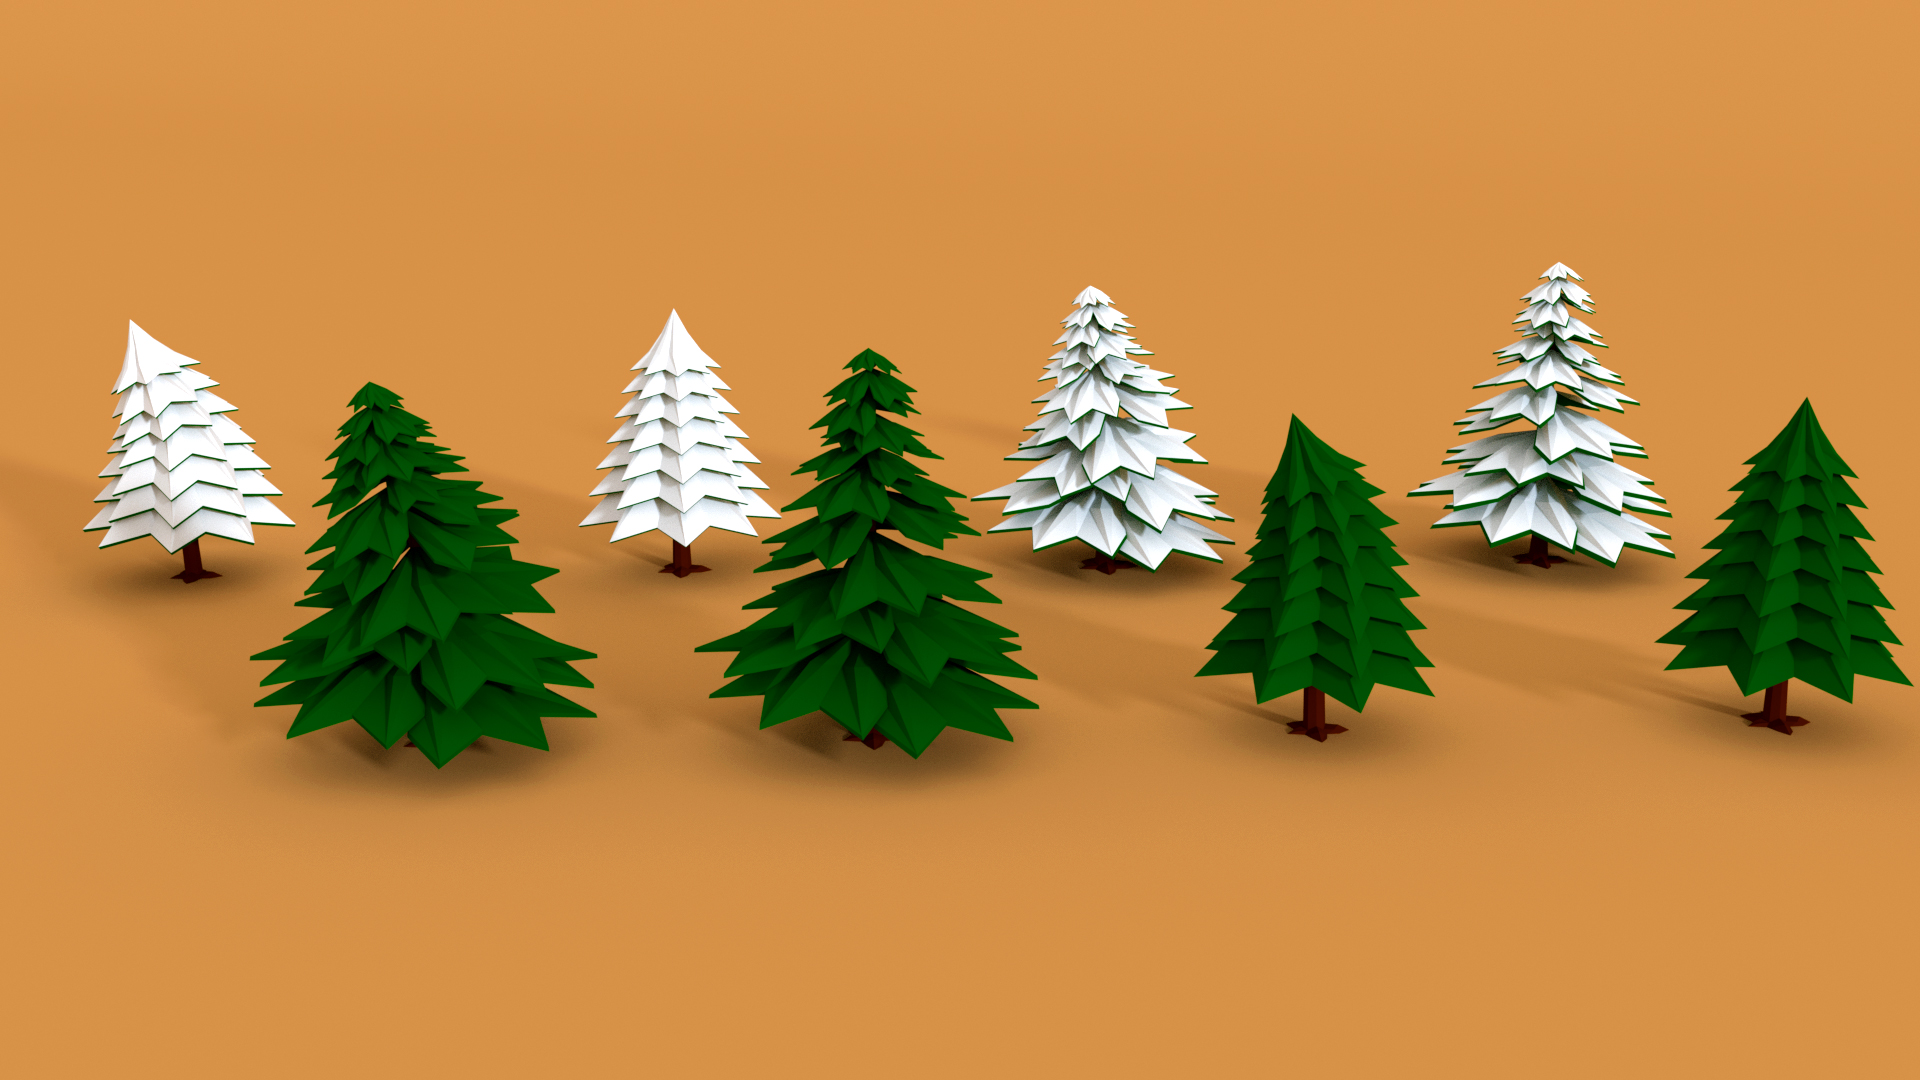 low poly pine trees pack 2 with snow by dekartech 3docean